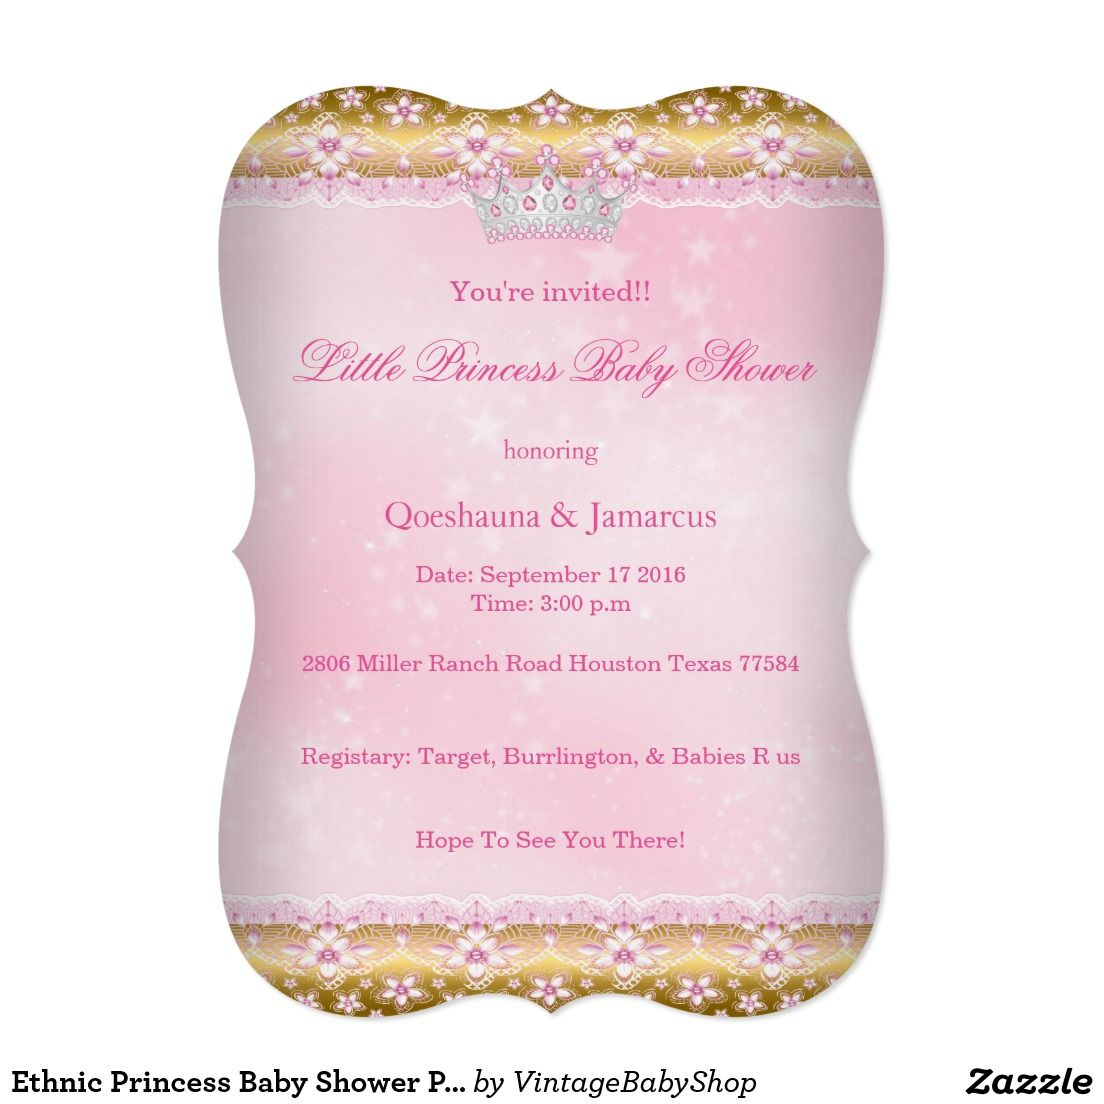 ethnic princess baby shower pink tutu gold tiara a card | pink, Baby shower invitations